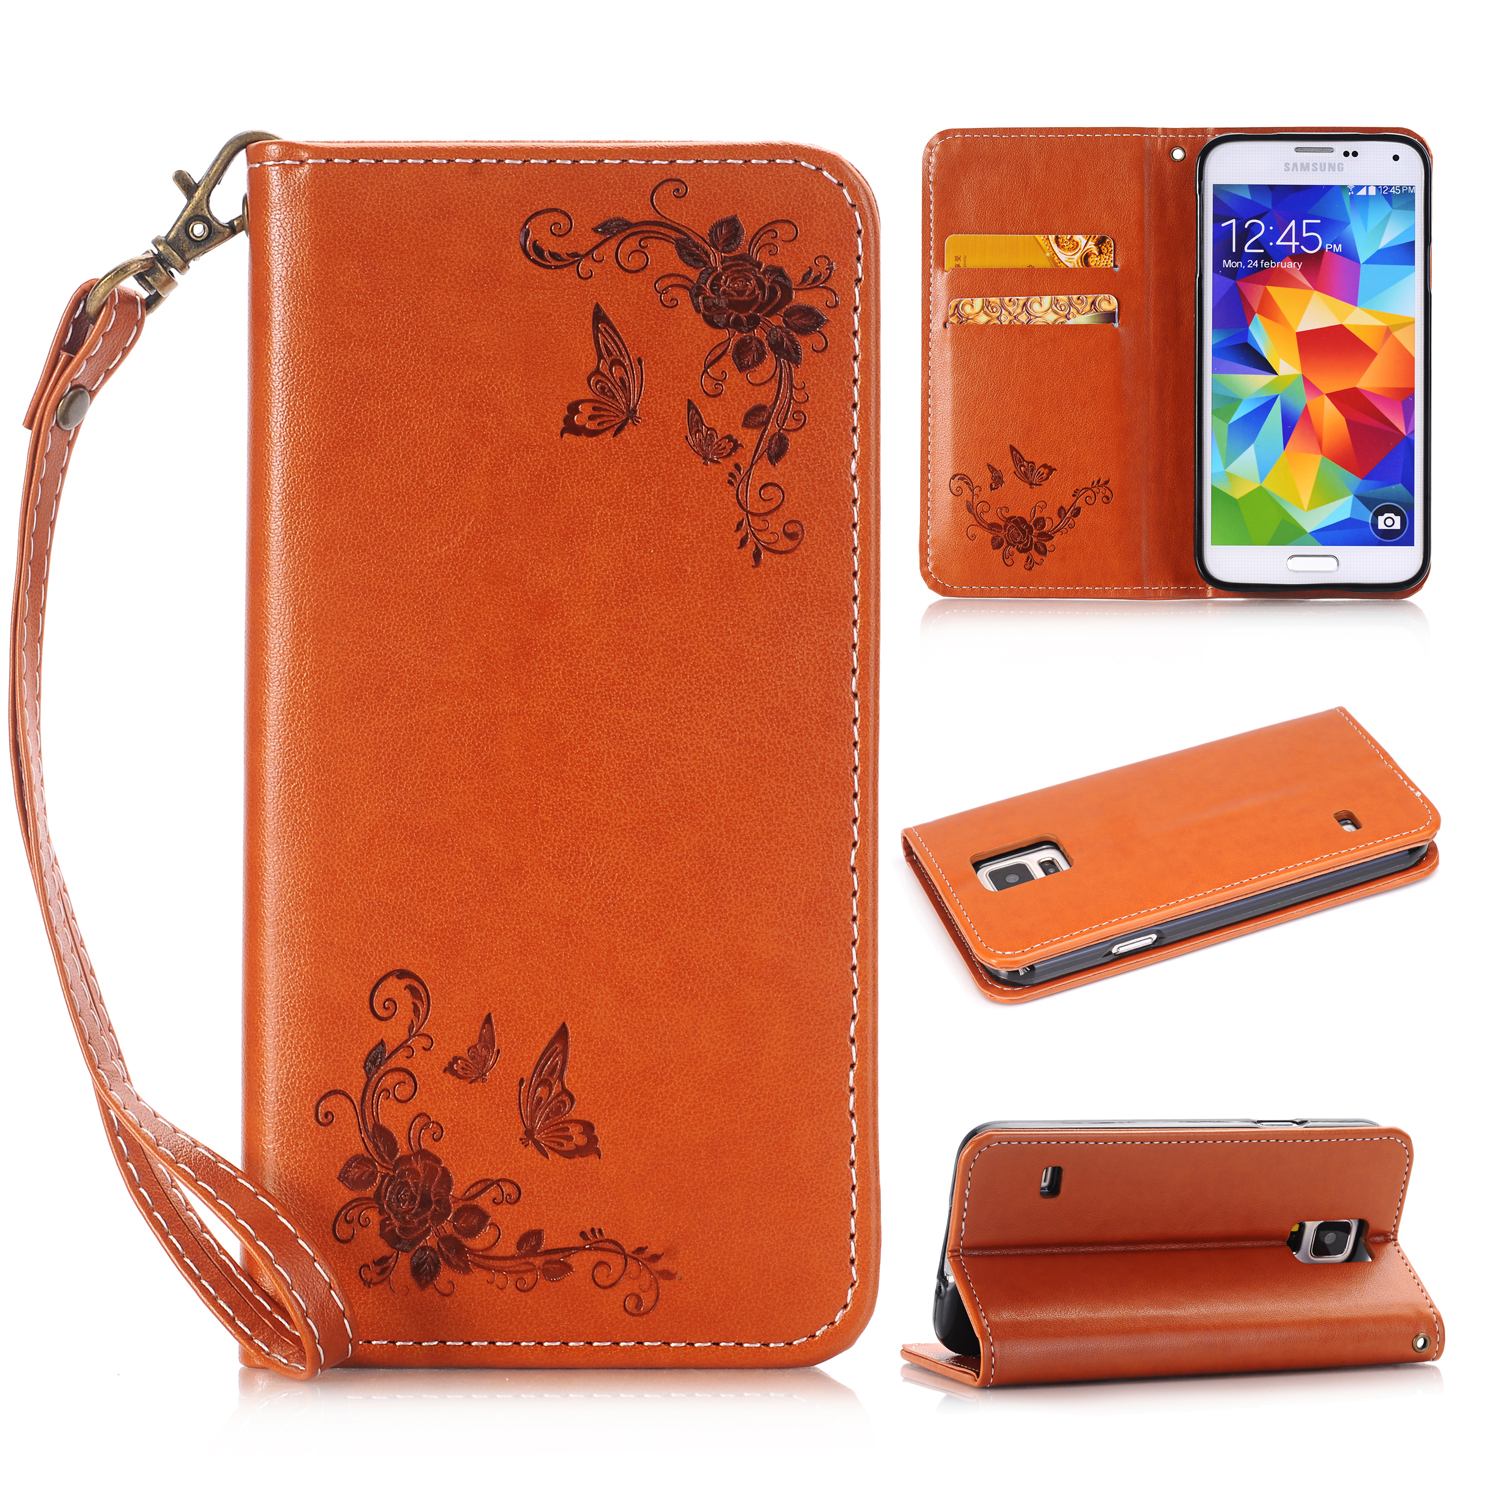 for <font><b>Samsung</b></font> Galaxy <font><b>S5</b></font> <font><b>Mini</b></font> <font><b>Case</b></font> Luxury Embososed Wallet Cover Leather <font><b>Flip</b></font> <font><b>Case</b></font> Cover for <font><b>Samsung</b></font> Galaxy S5Mini G800 G800F G800H image